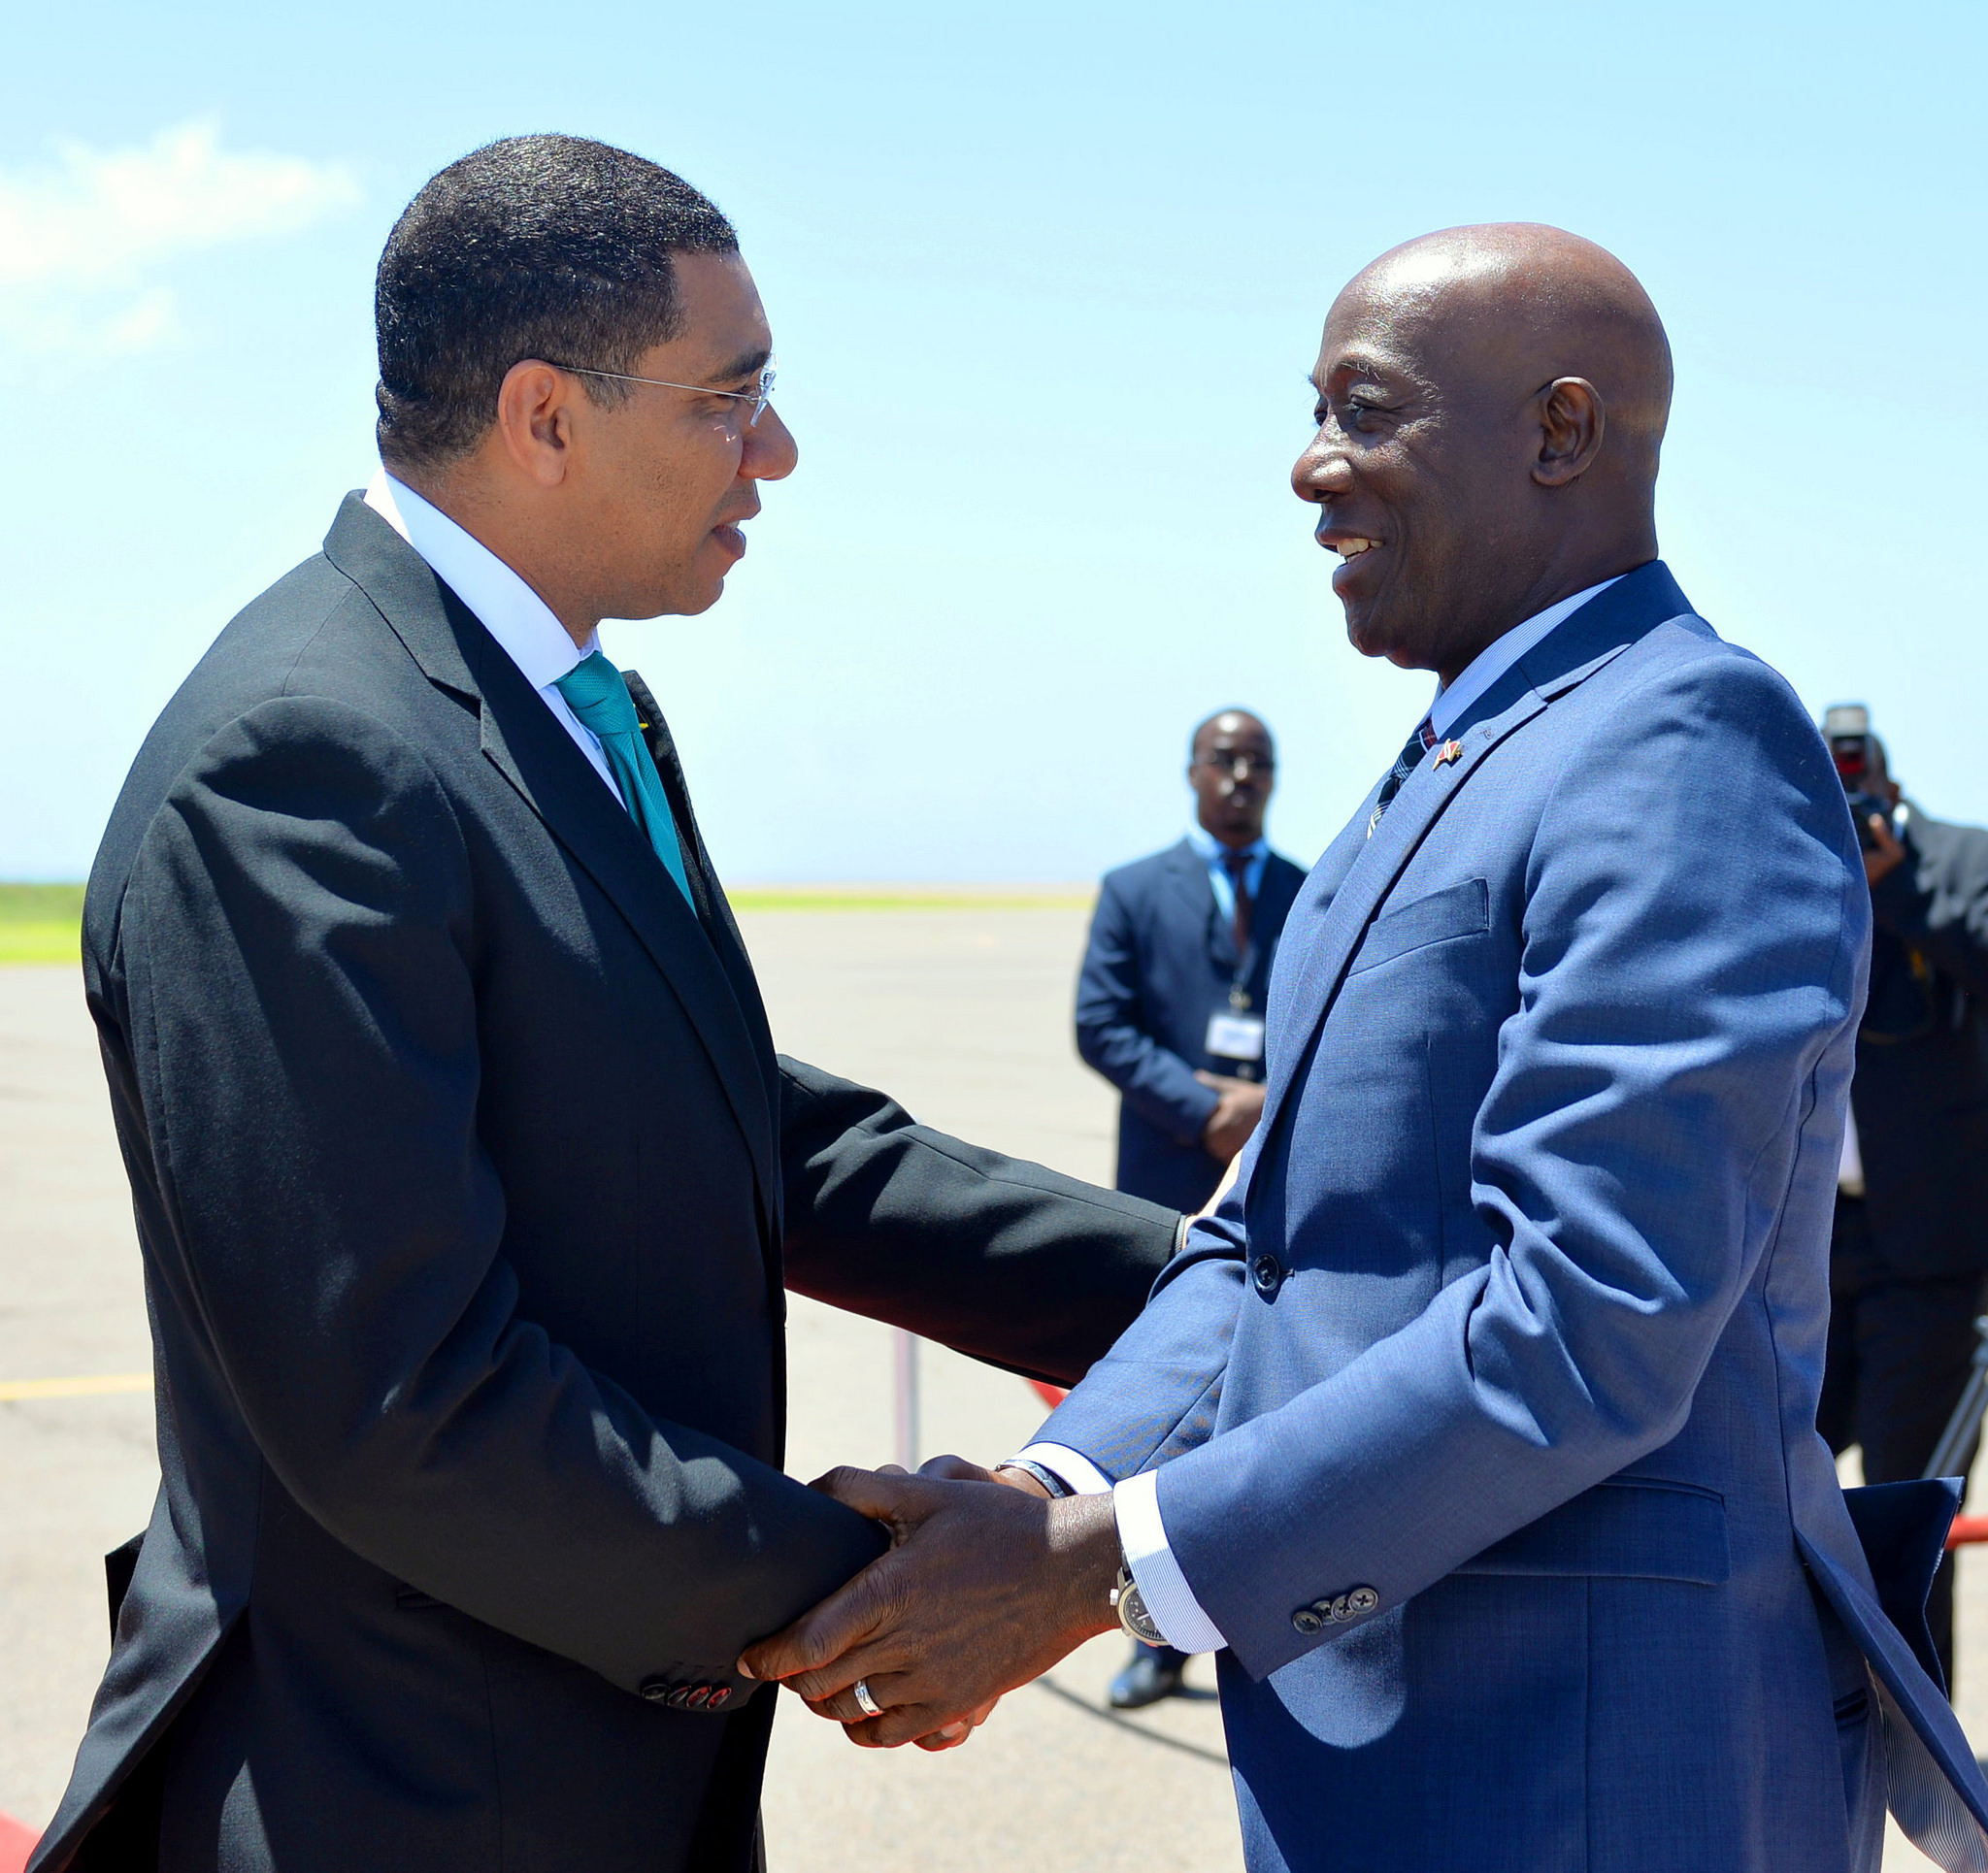 Prime Minister the Most Hon. Andrew Holness (left), greets Dr. the Hon. Keith Rowley, Prime Minister of Trinidad and Tobago, on his arrival at the Norman Manley International Airport today (July 17), for the start of an Official Visit to the island.